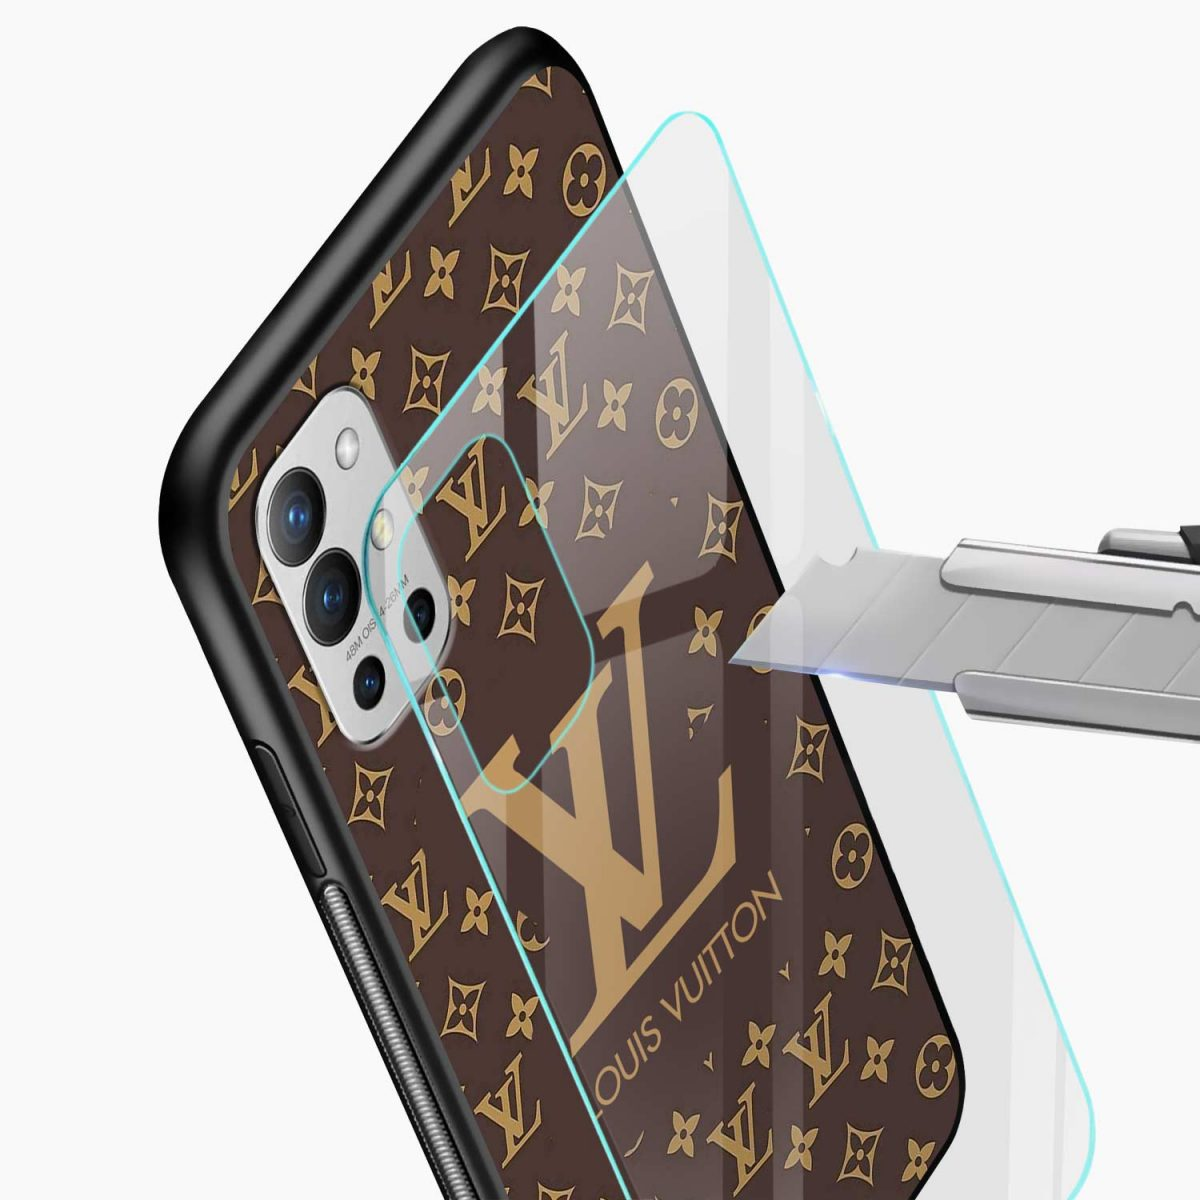 louis vuitton glass view oneplus 9r back cover